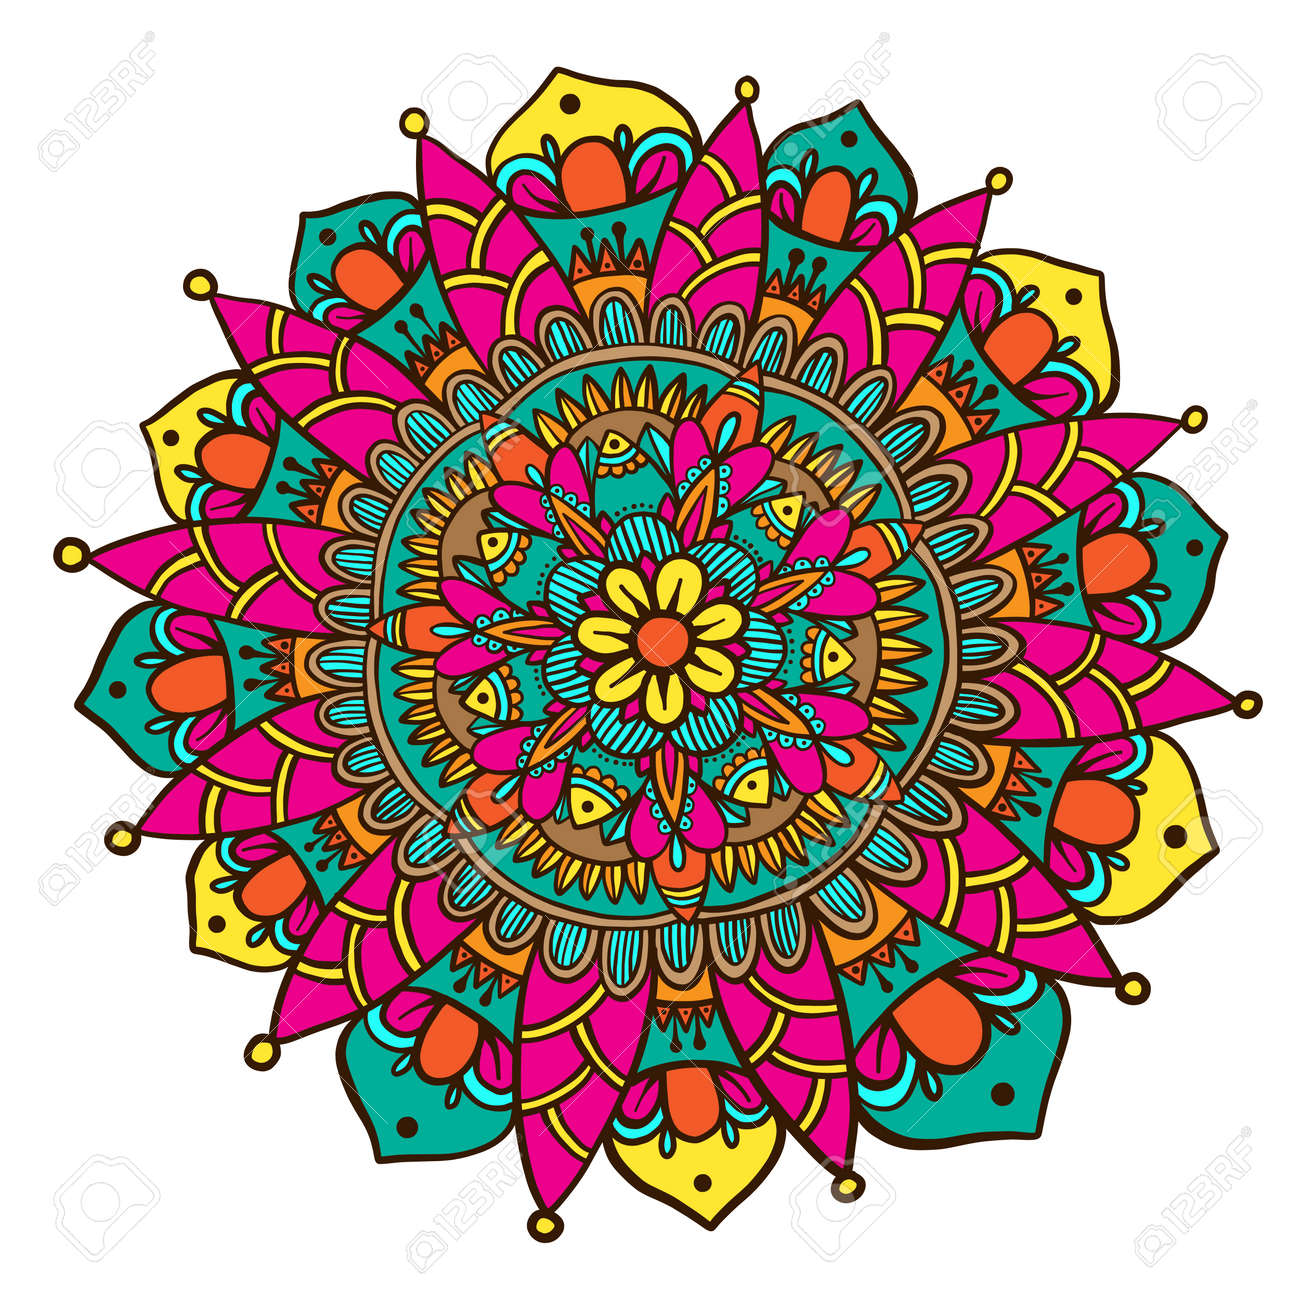 hand drawn flower mandala decorative round ornament henna design